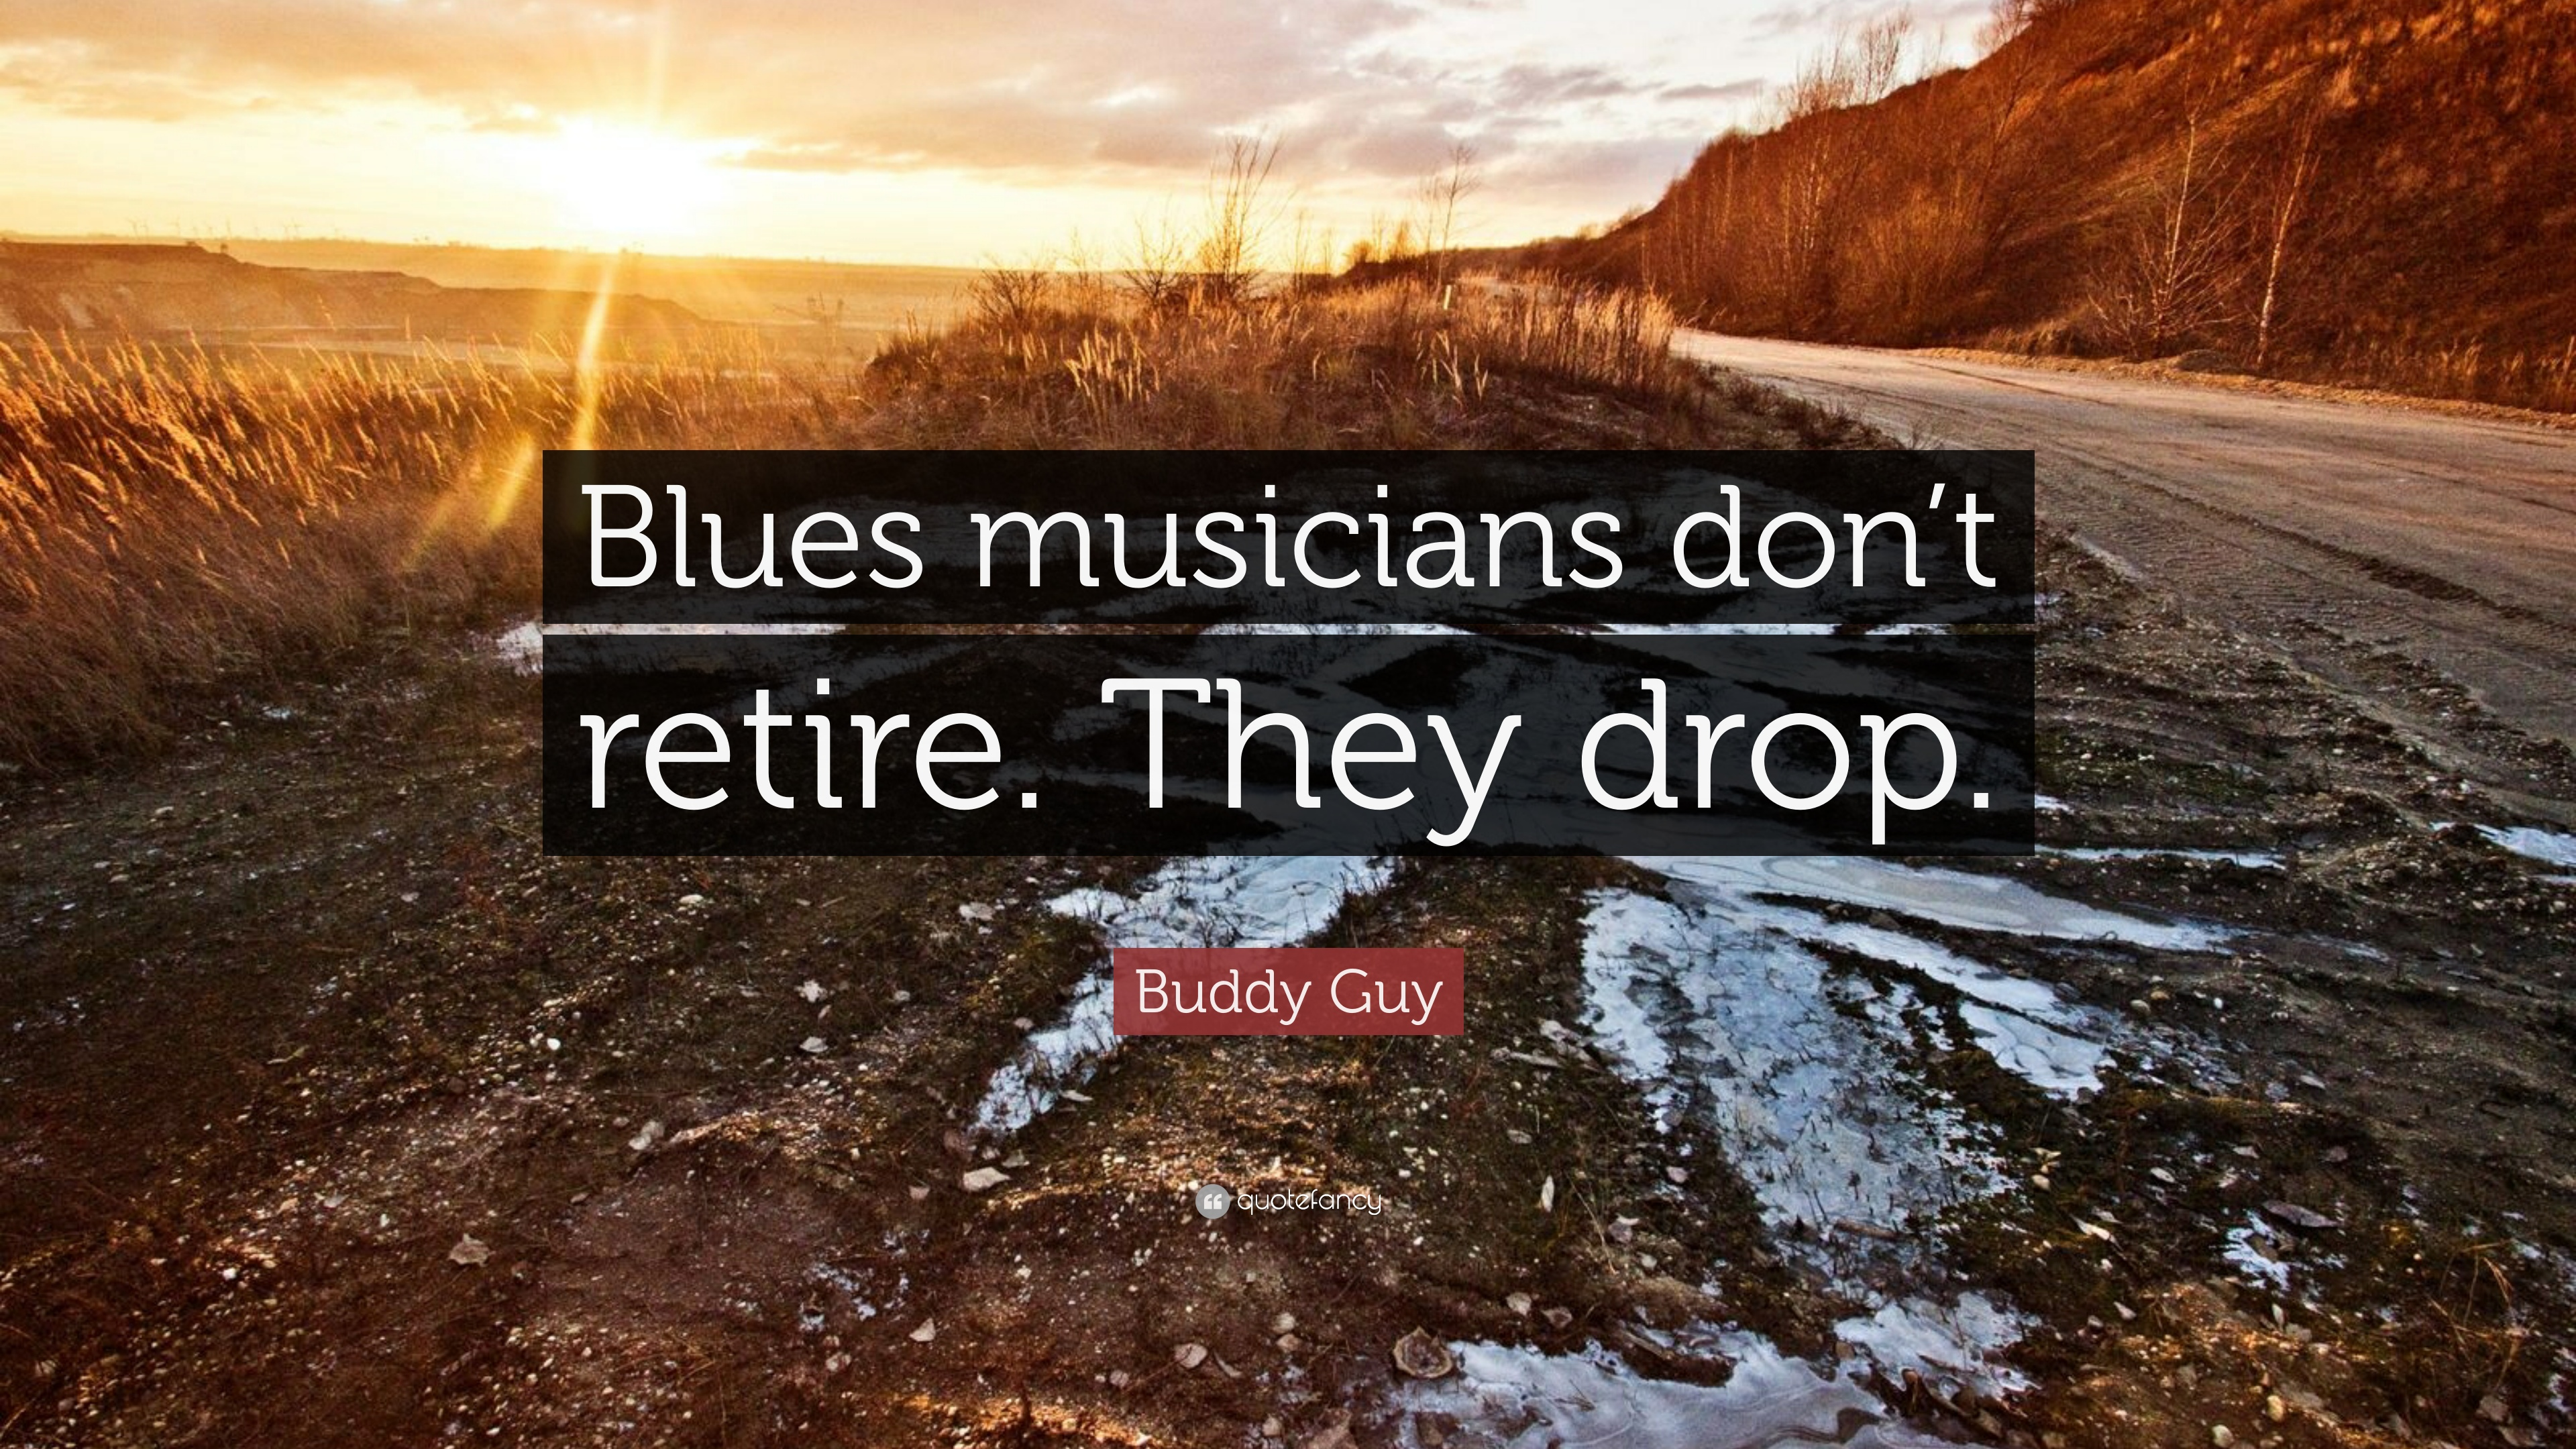 Guy Quotes | Buddy Guy Quotes 27 Wallpapers Quotefancy